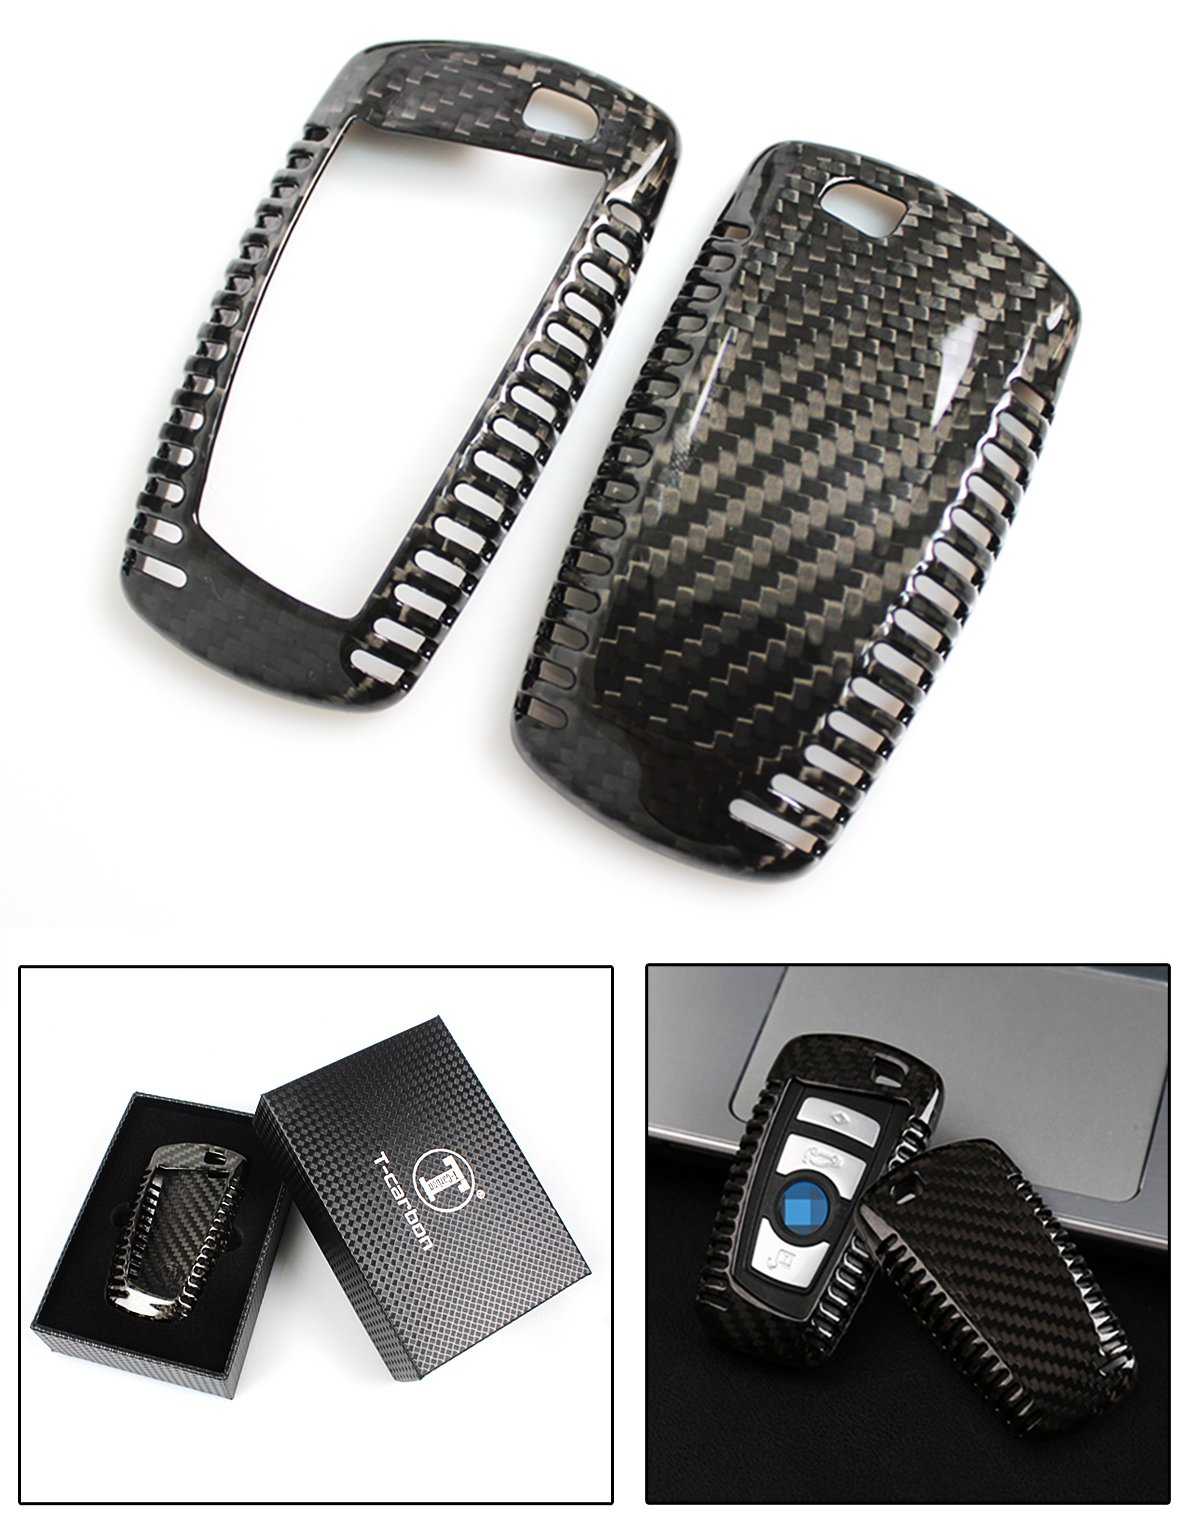 Luxury Carbon Fiber Key Protective Hard Case Cover for BMW Leyless Entry Smart Fob by Cuztom Tuning